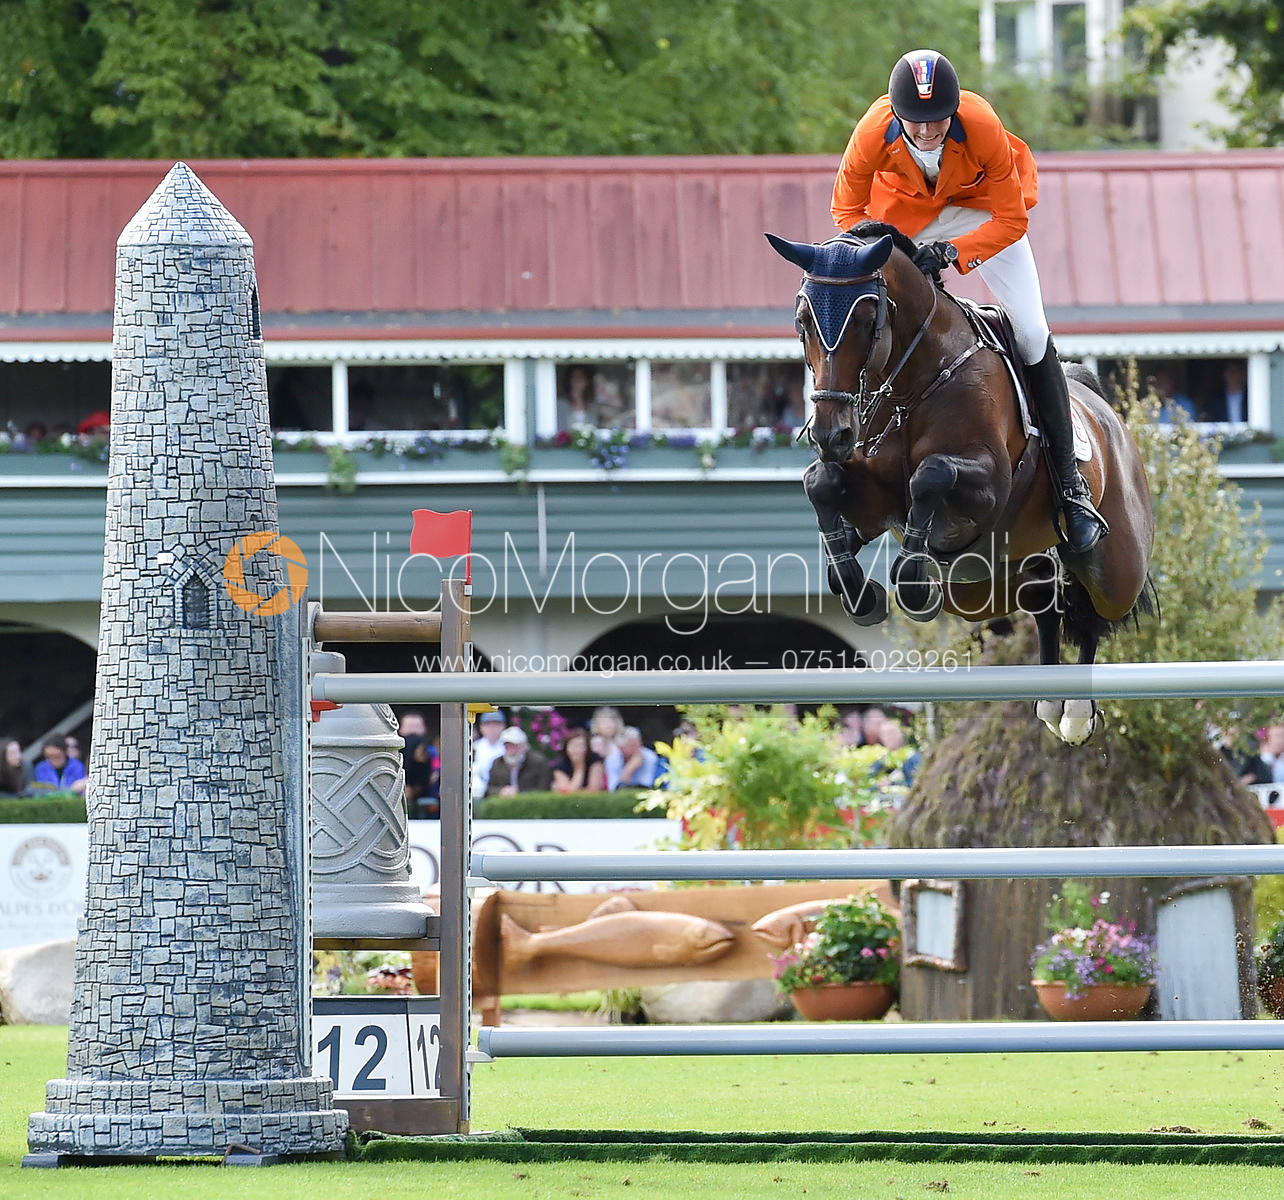 Frank Shuttert and CHIANTI'S CHAMPION - FEI Nations Cup, Dublin Horse Show 2017